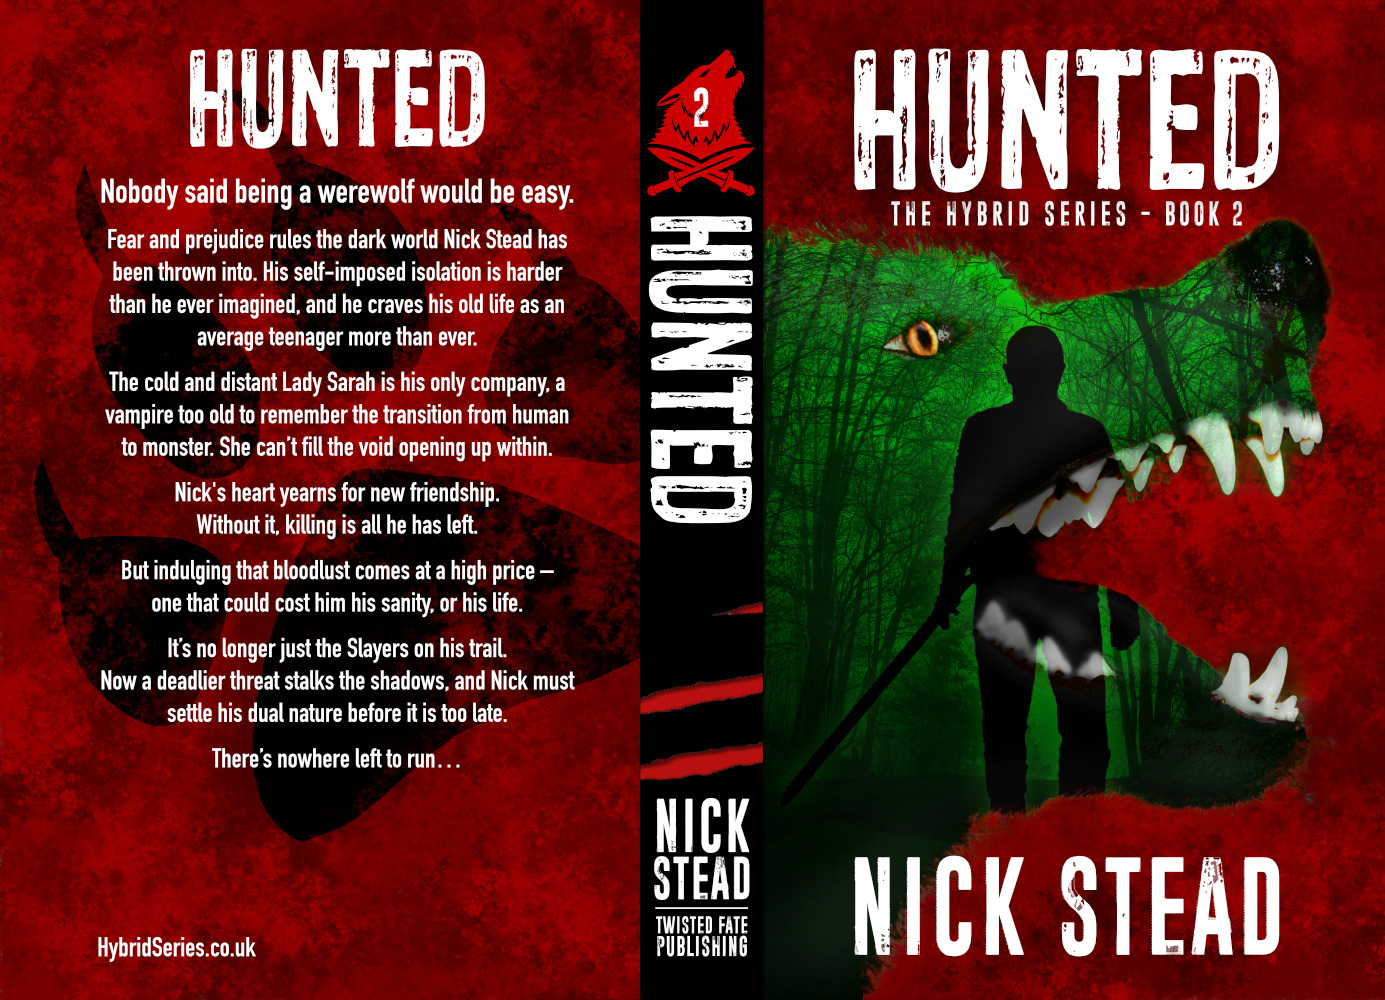 Twisted Fate Publishing to release revised and extended edition of Hunted from horror author Nick Stead